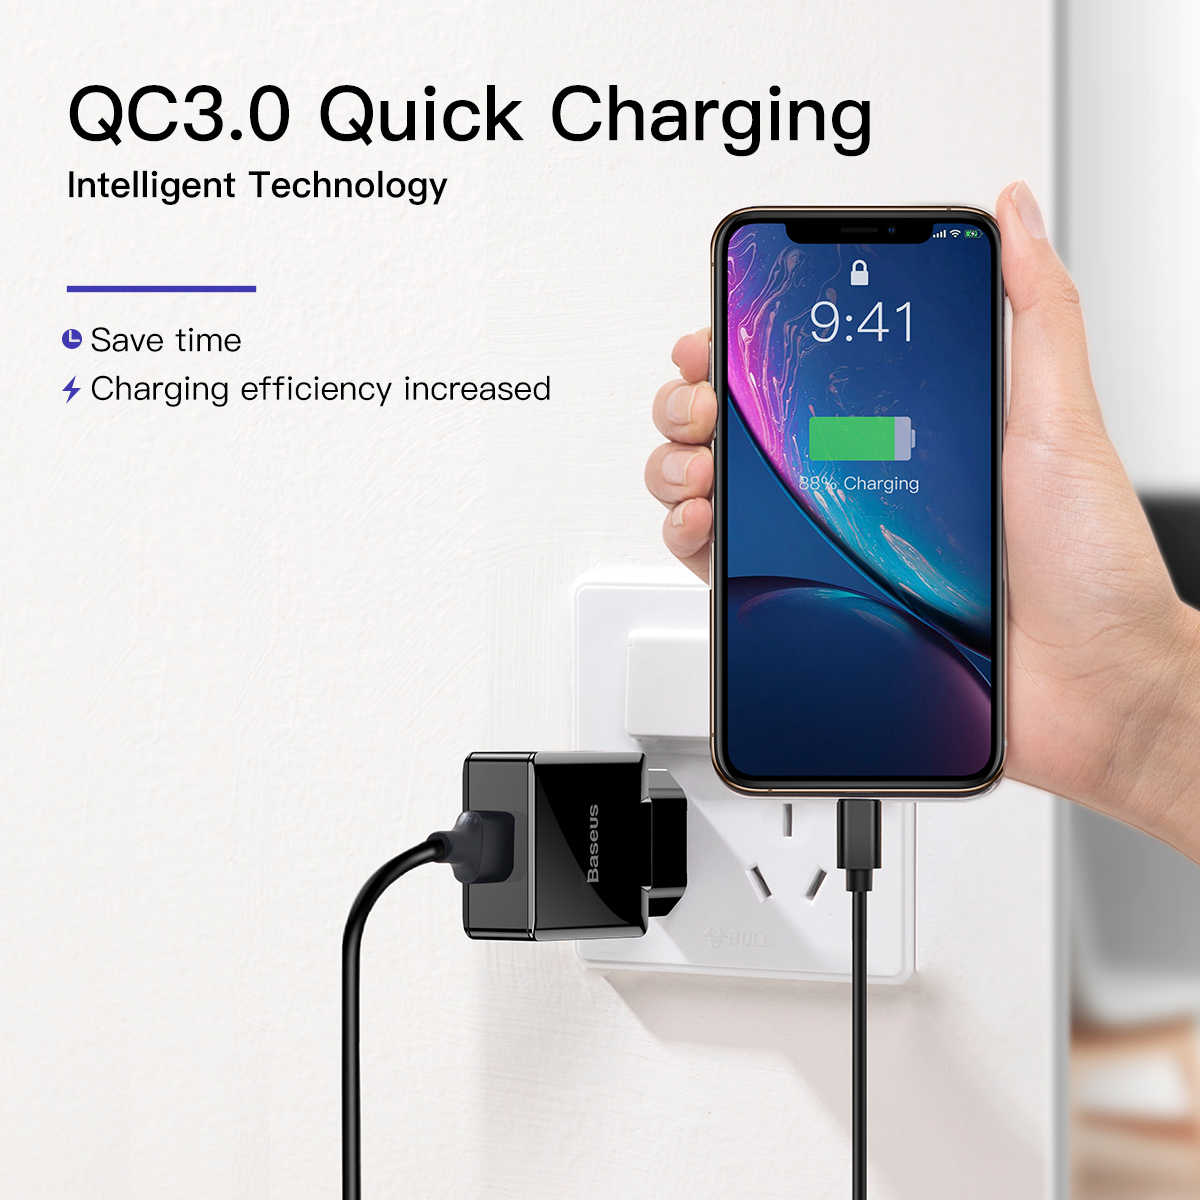 Baseus Quick Charge 3.0 2.0 Usb Charger Voor Iphone Xiaomi Samsung Huawei QC3.0 Qc Snel Charing Turbo Muur Mobiele Telefoon lader